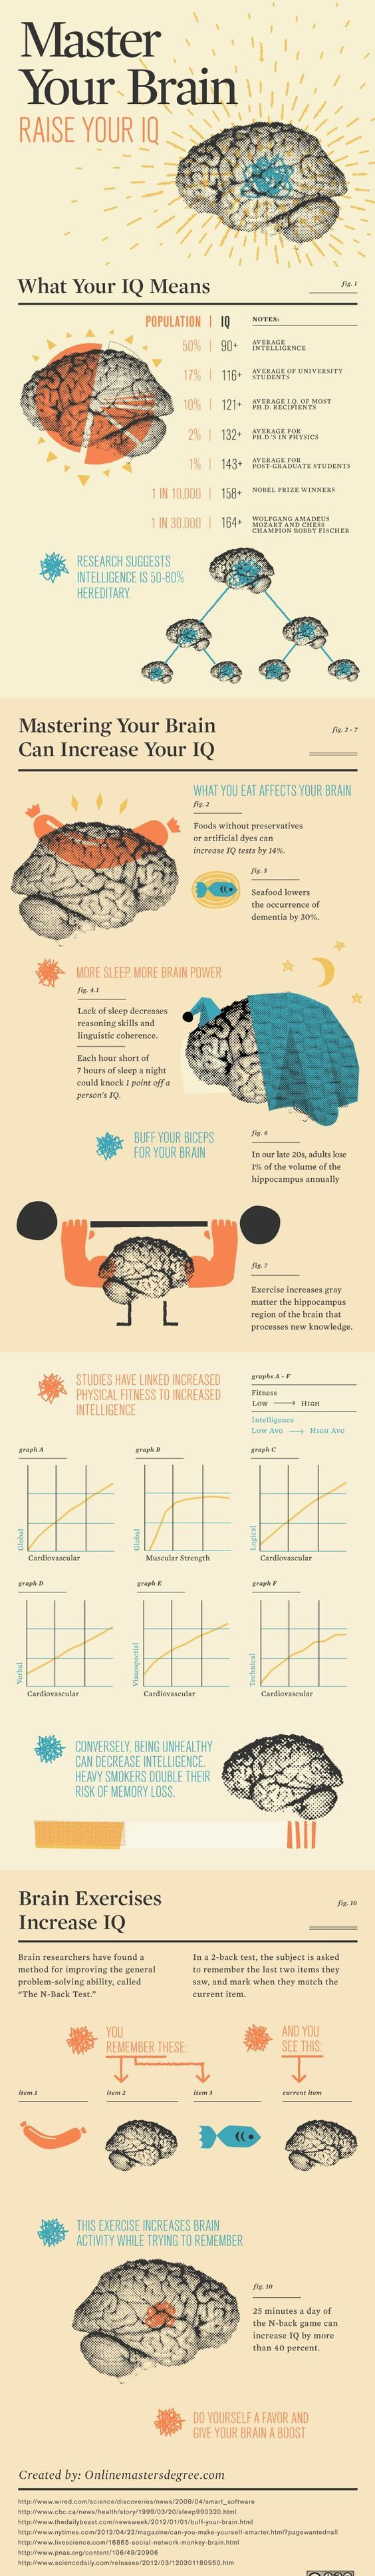 Master your Brain Power 2, Brain power can be increased through the foods you eat or the amount of sleep you get